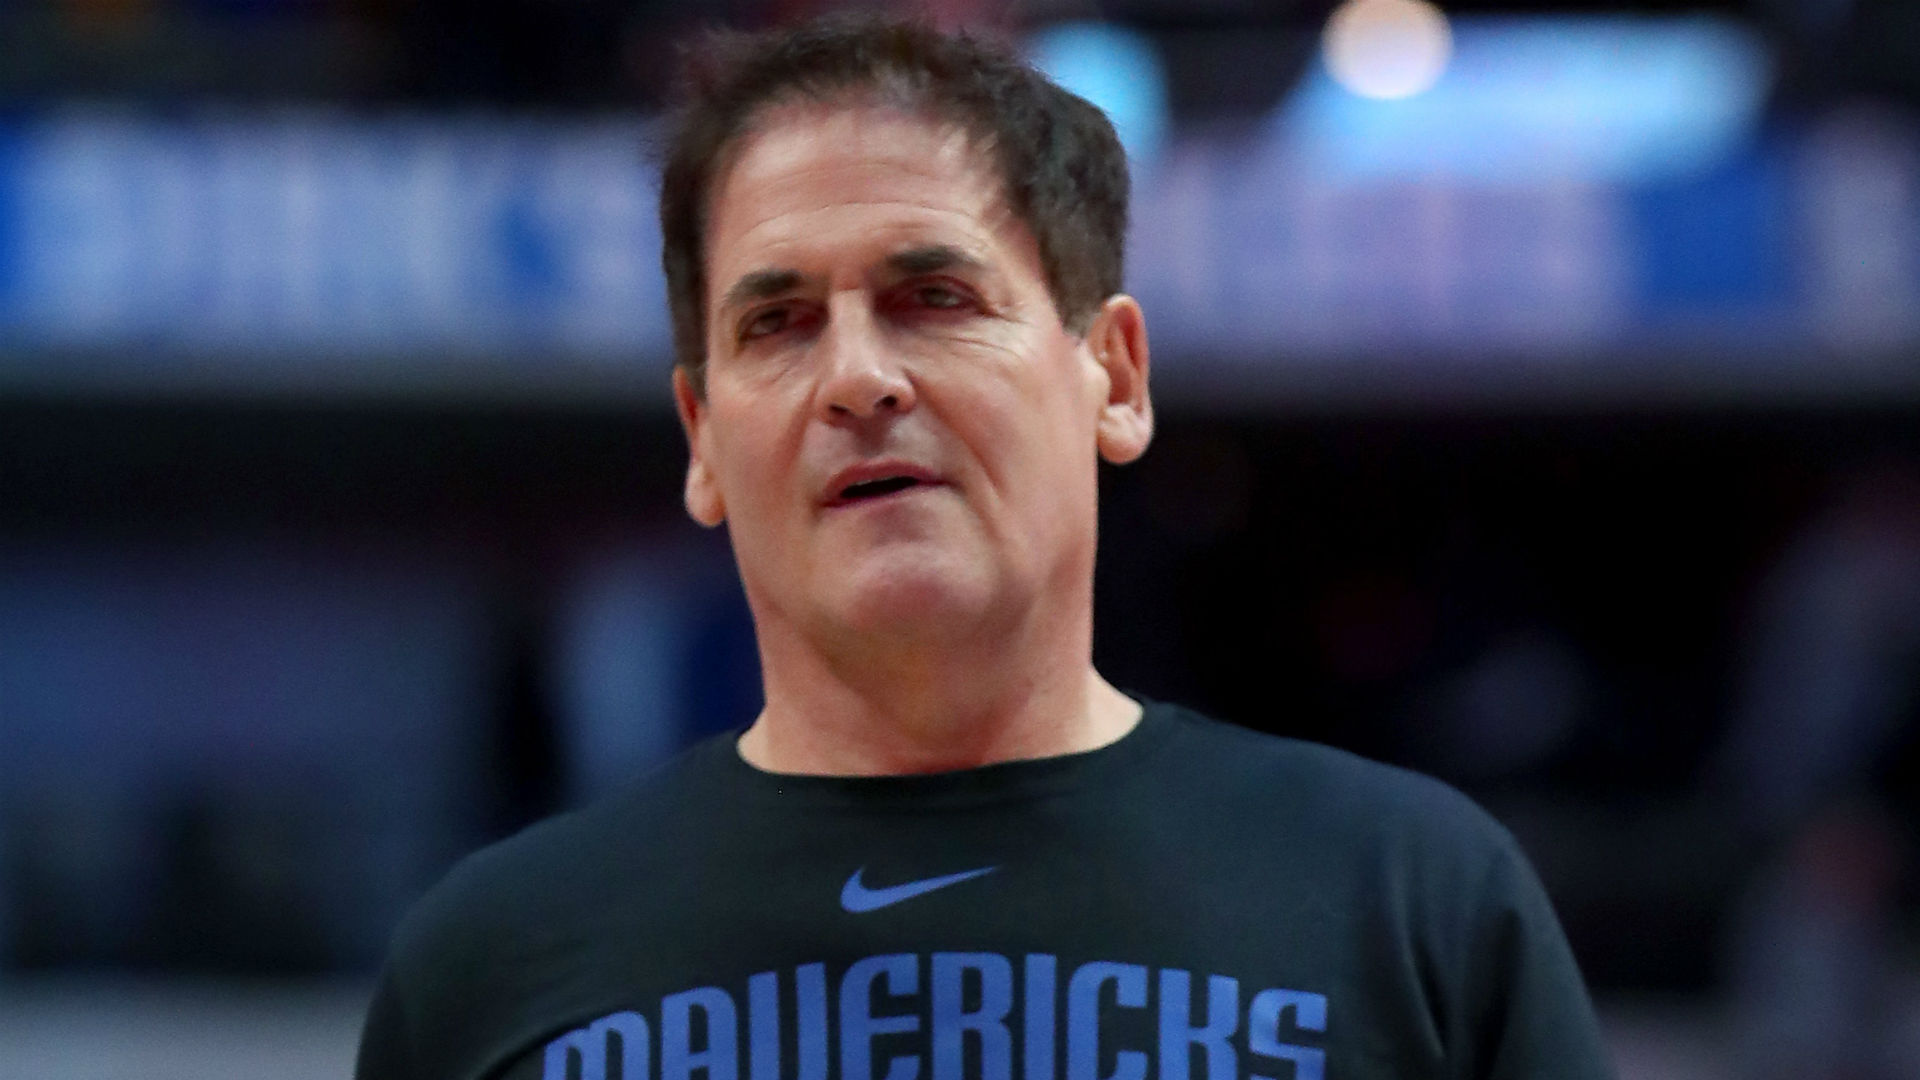 Mark Cuban fined $50K for leaking information during NBA Board of Governors meeting, report says